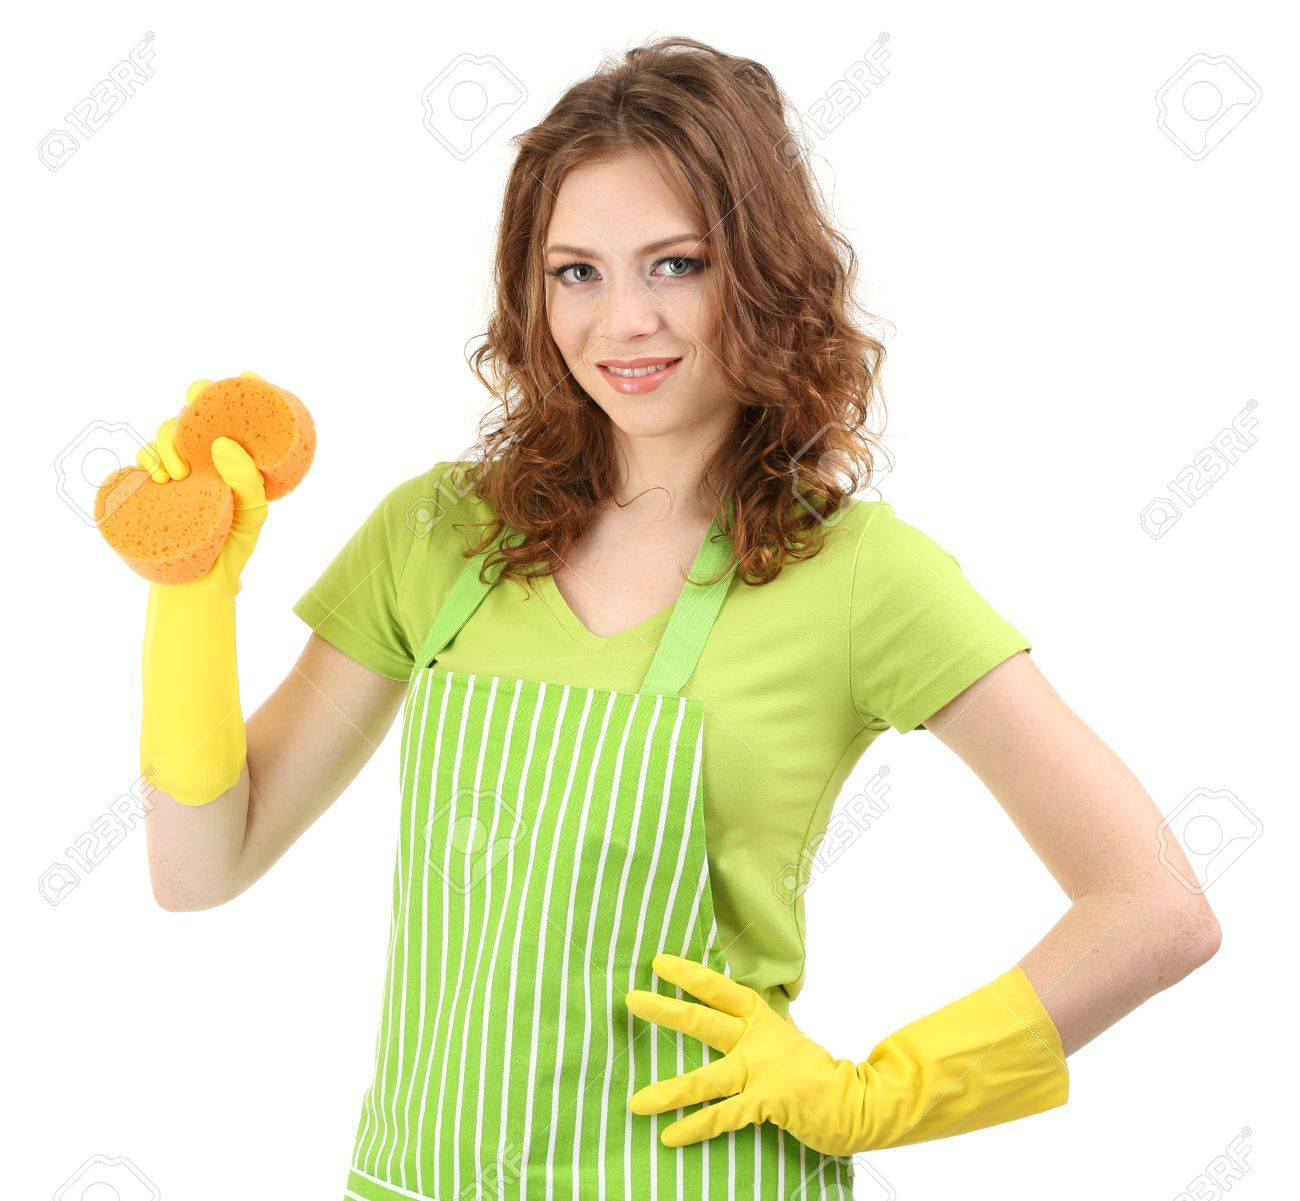 White apron project - White Apron Green Thumb Stock Photo Young Woman Wearing Green Apron And Rubber Gloves With